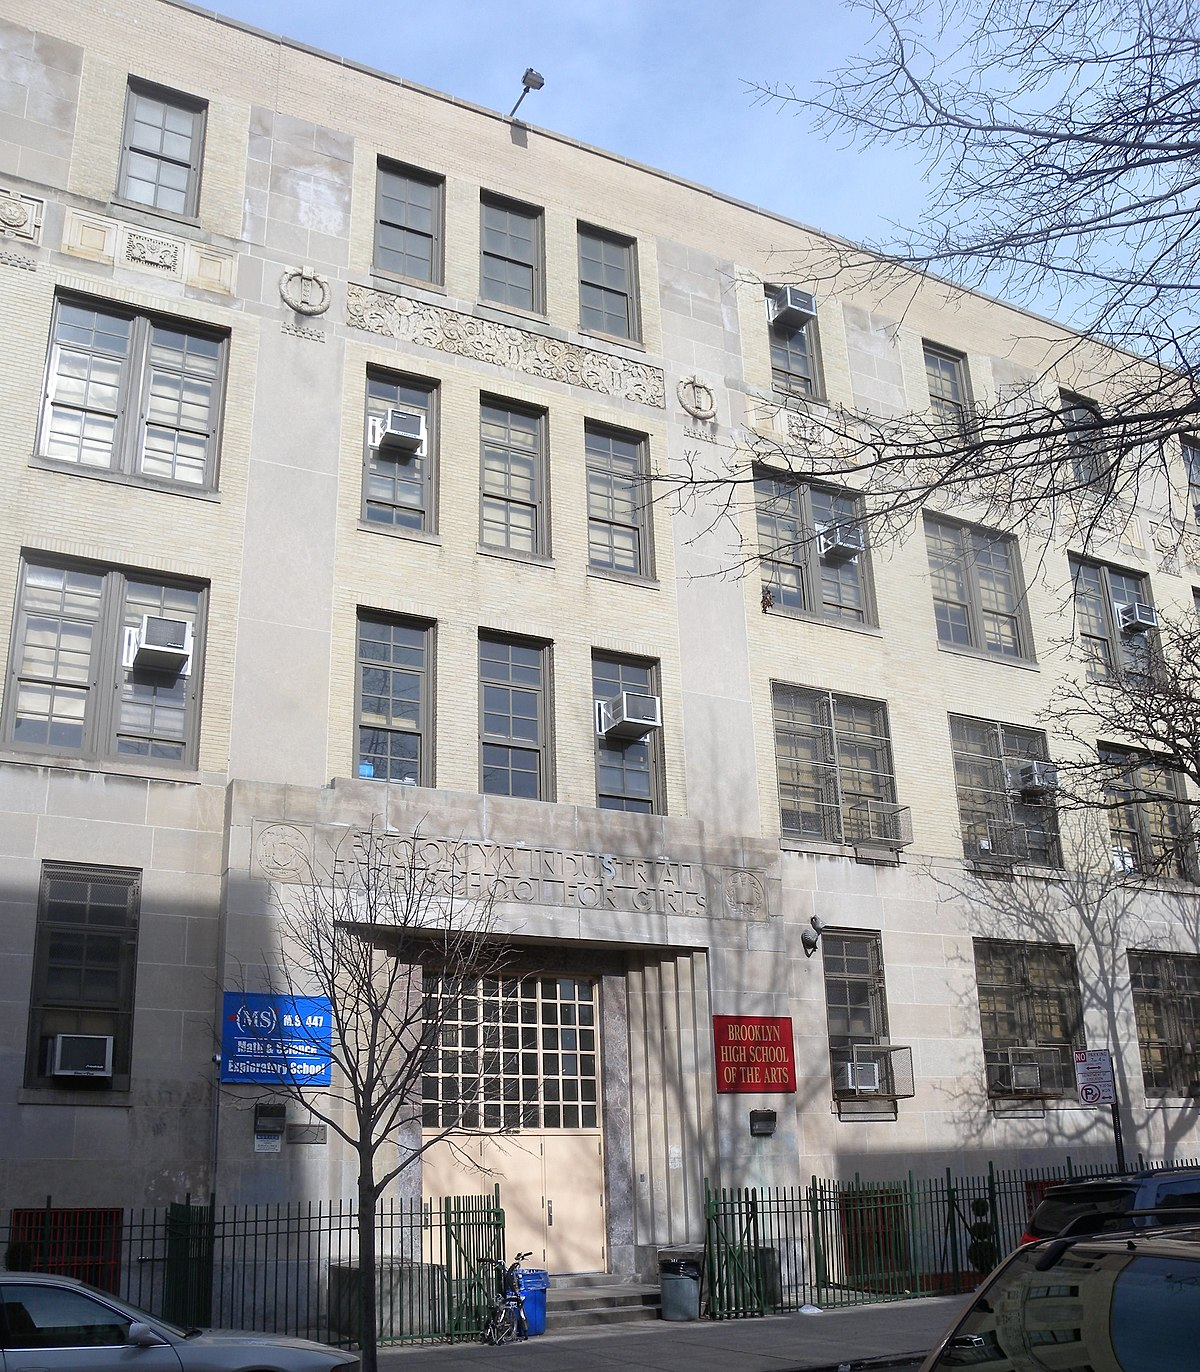 Brooklyn High School Of The Arts  Wikipedia. Cdc Signs Of Stroke. Equality Signs Of Stroke. Thinking Signs. Kiss Signs Of Stroke. Gemini Signs. Human Body Signs. Fallout Shelter Signs Of Stroke. Extreme Heat Signs Of Stroke